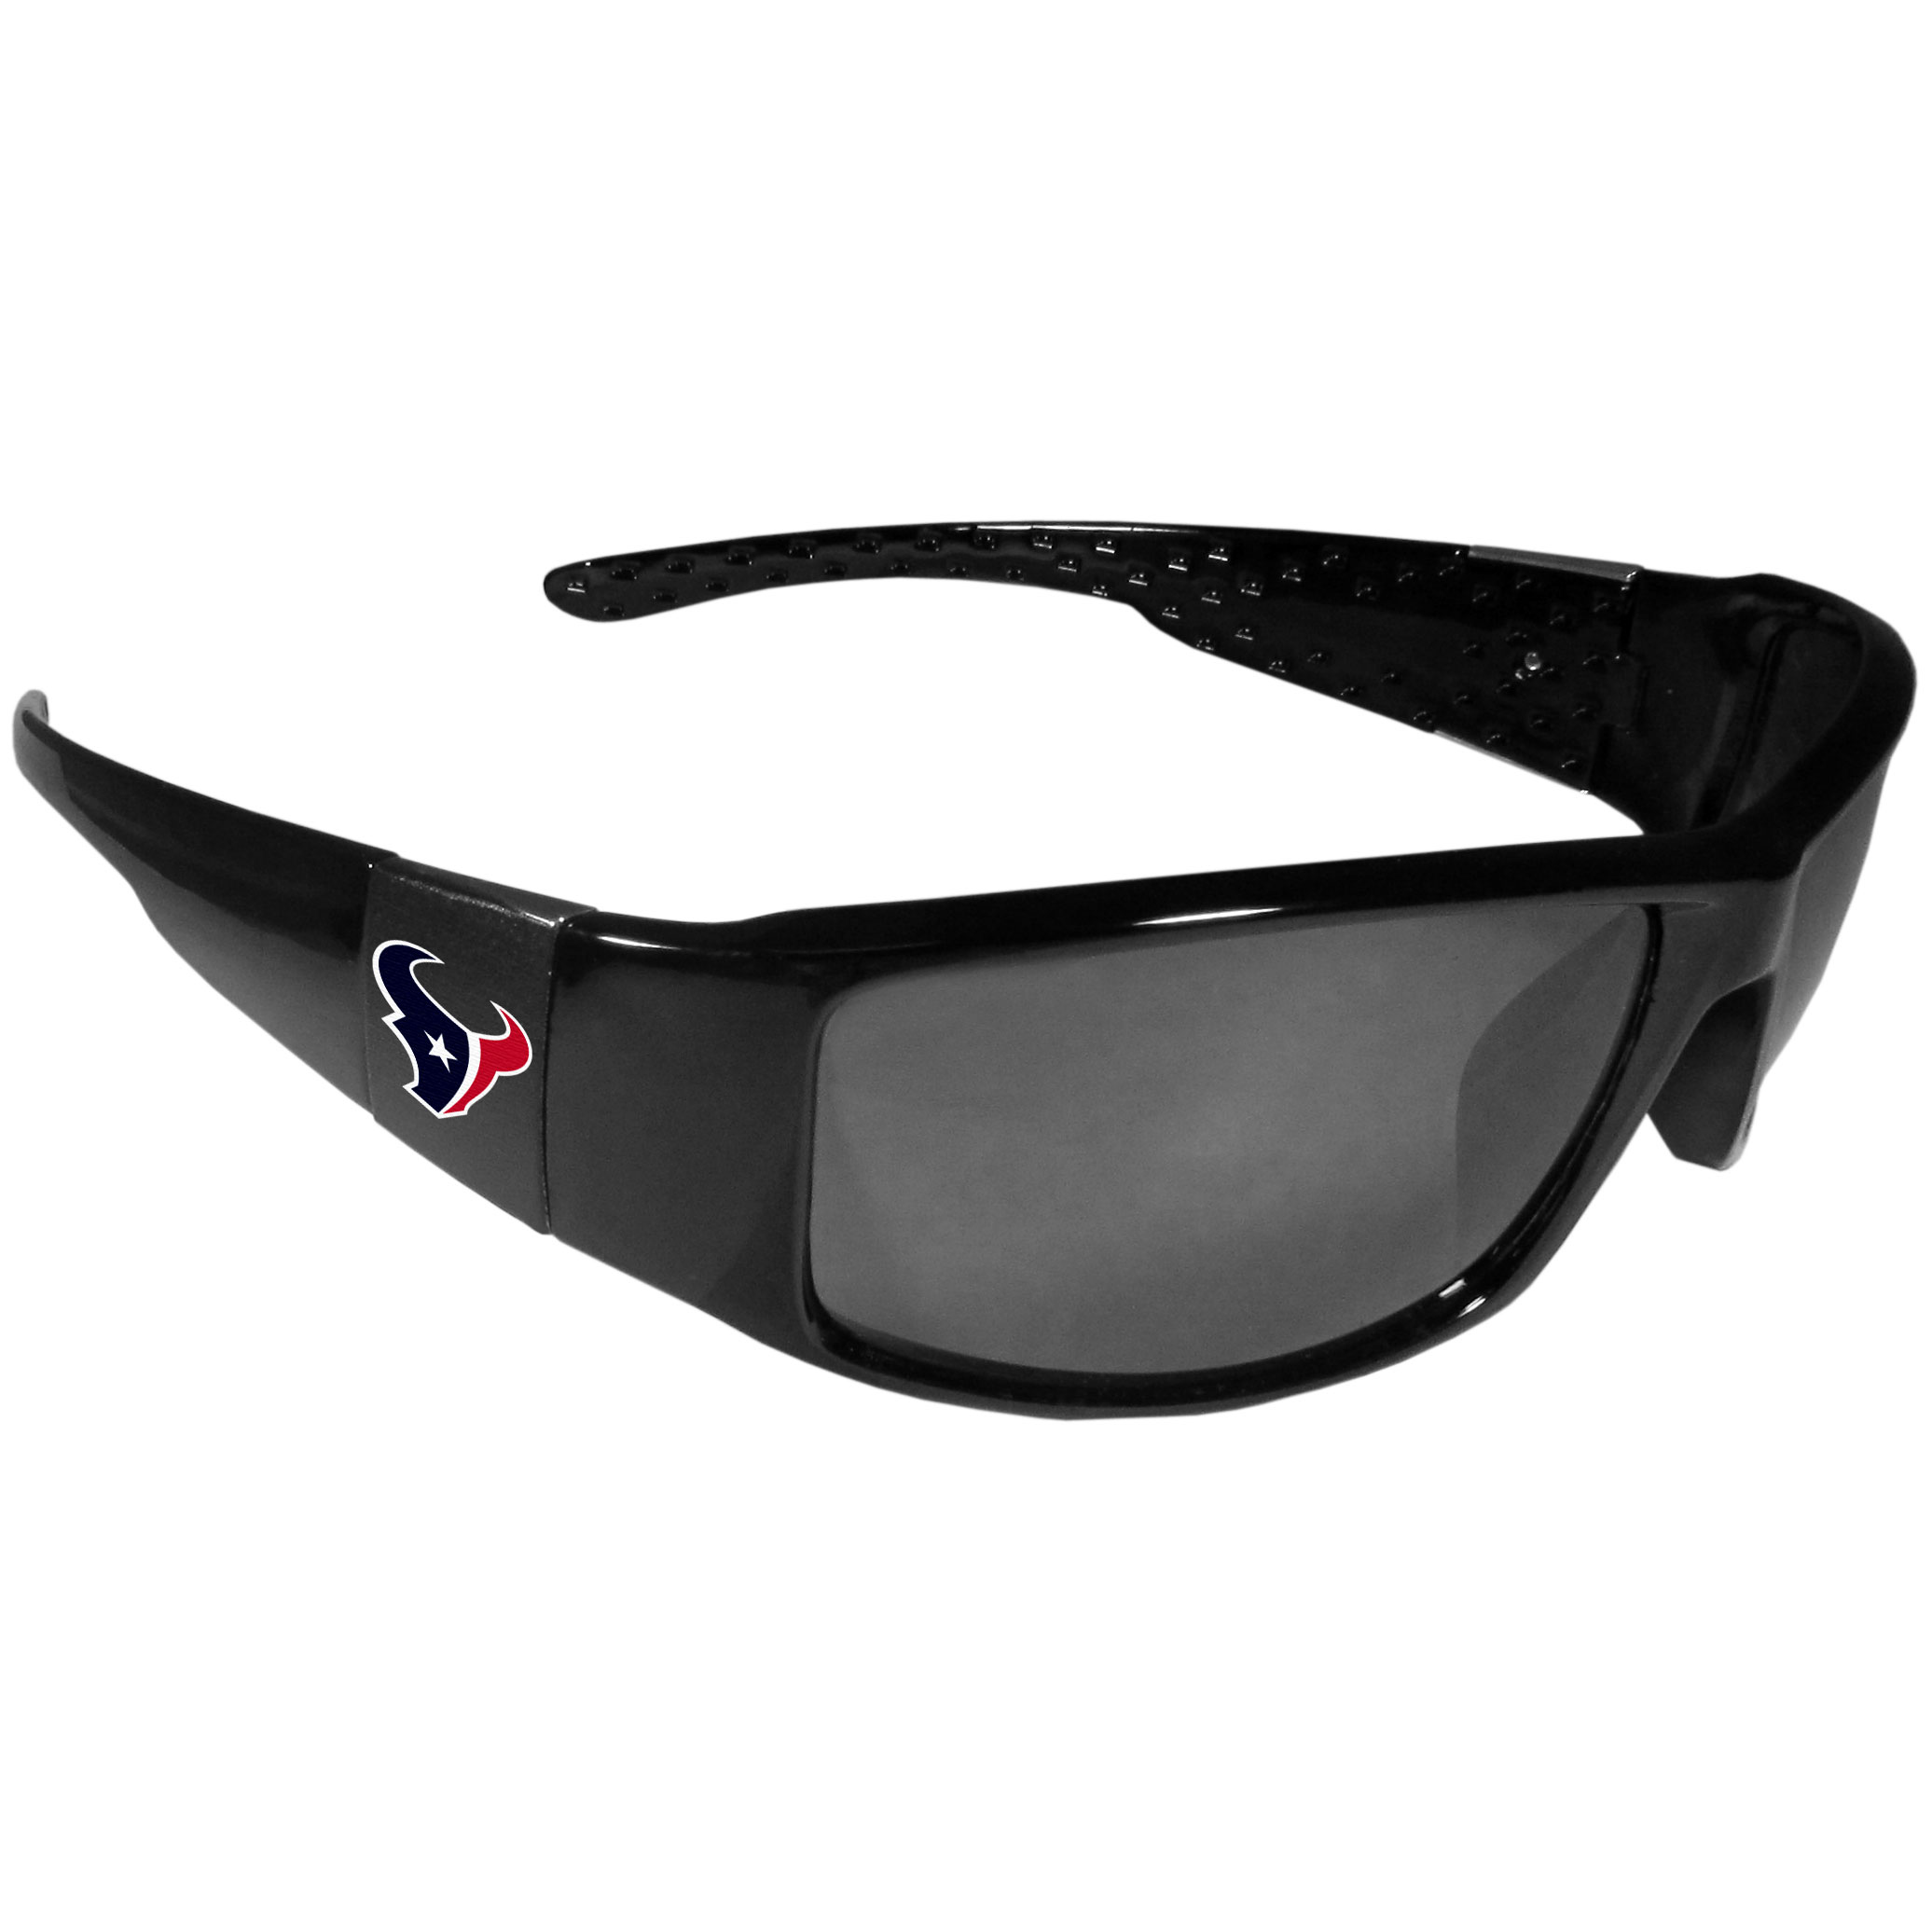 Houston Texans Black Wrap Sunglasses - These designer inspired frames have a sleek look in all black with  Houston Texans shields on each arm with a printed logo. The shades are perfect for any outdoor activity like; golfing, driving, hiking, fishing or cheering on the team at a tailgating event or at a home game day BBQ with a lens rating of 100% UVA/UVB for maximum UV protection. The high-quality frames are as durable as they are fashionable and with their classic look they are the perfect fan accessory that can be worn everyday for every occasion.